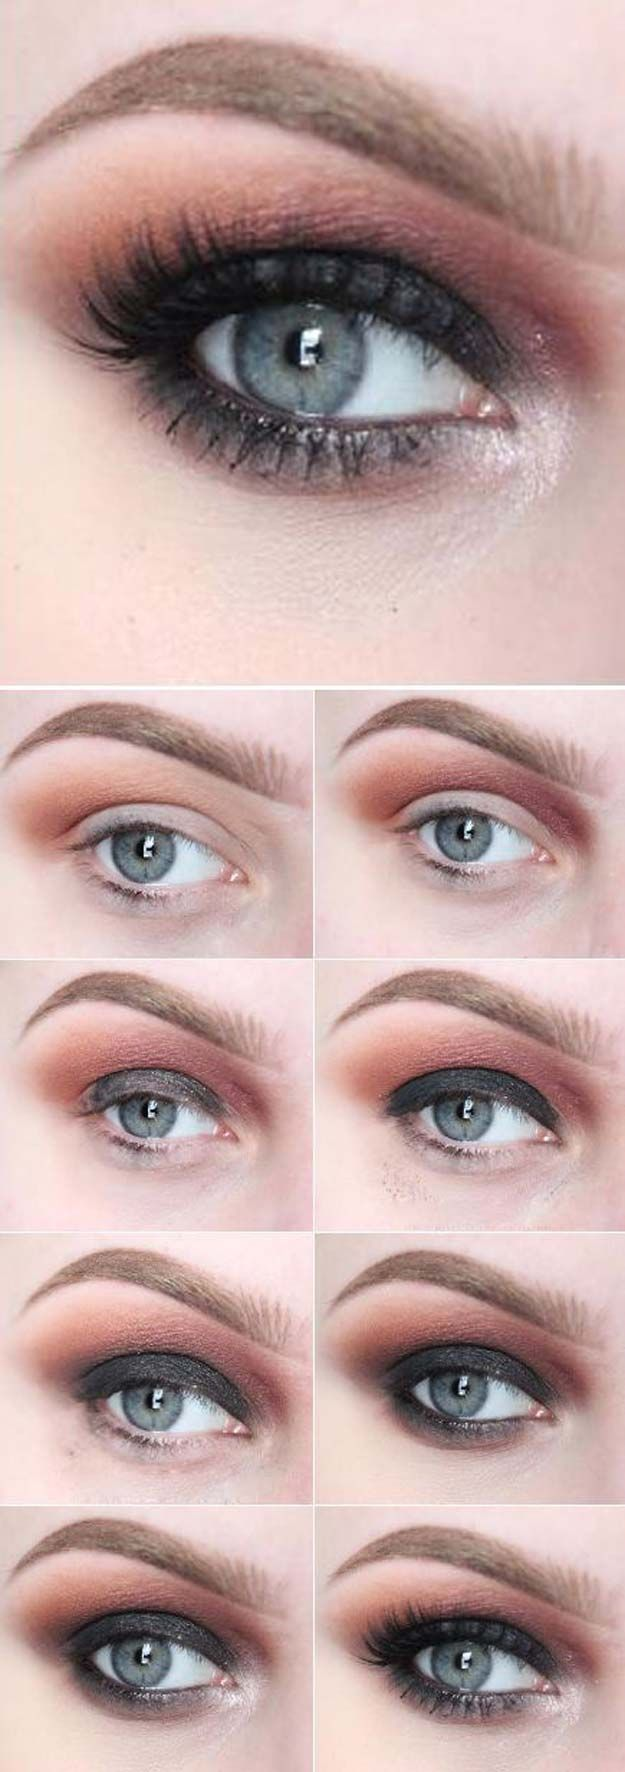 Sexy Eye Makeup Tutorials - Smoky Eyes For Warm Days - Easy Guides on How To Do ...